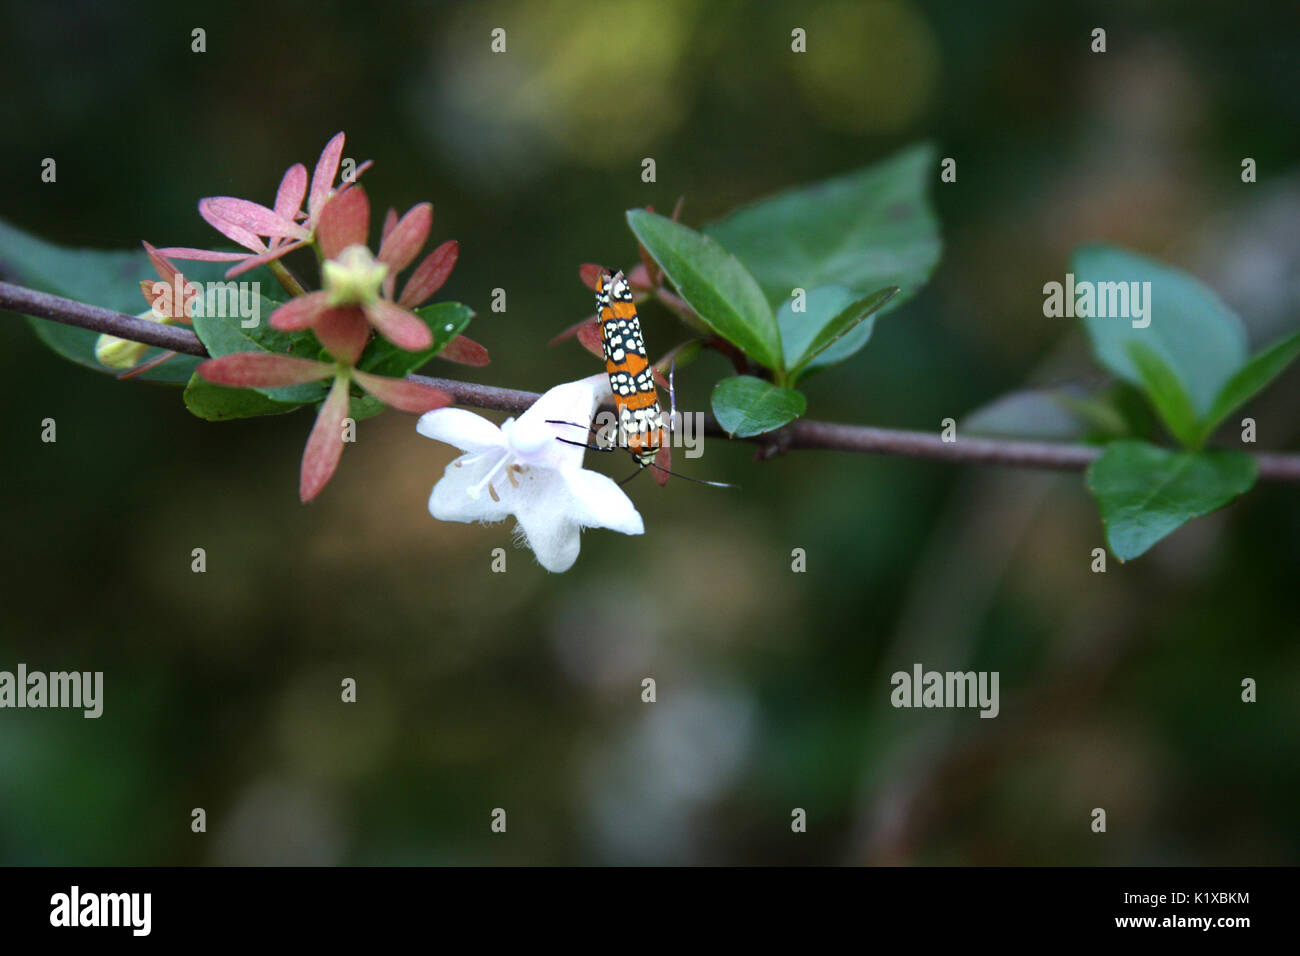 Ailanthus webworm moth on branch with flowers - Stock Image